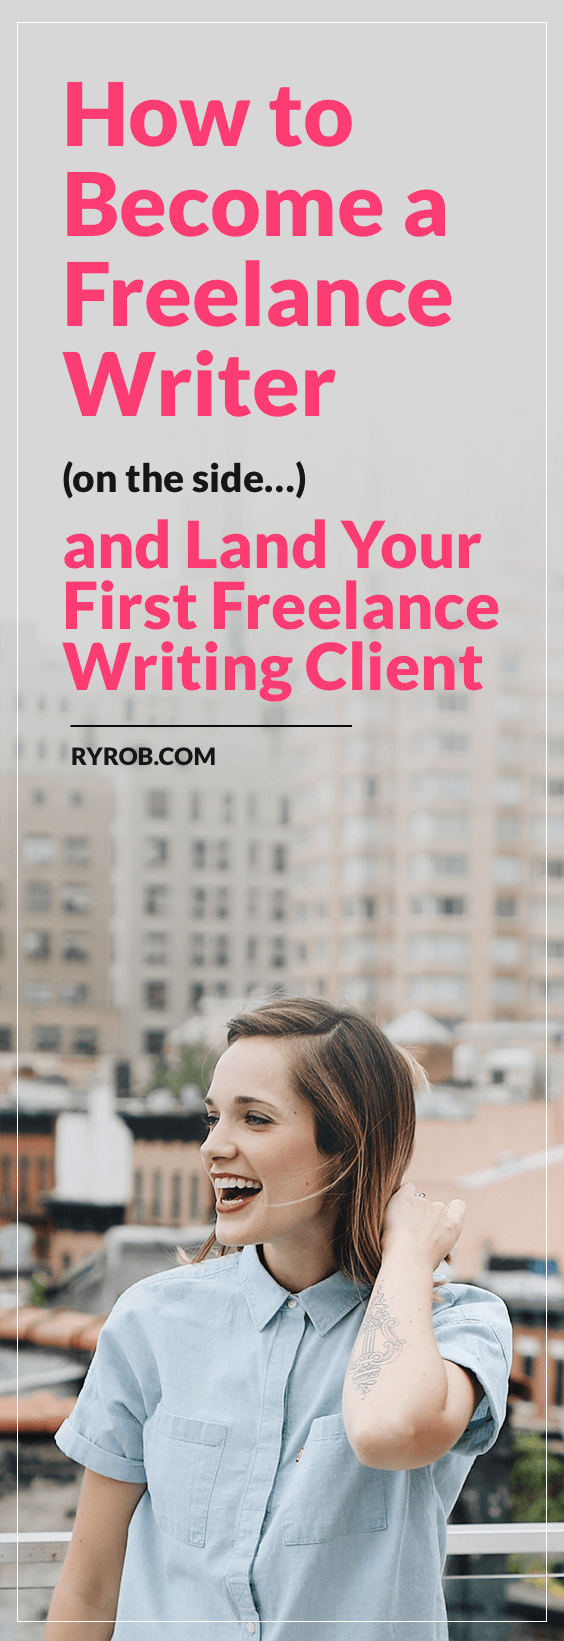 steps to become a lance writer and get your first client let s talk about how to become a lance writer on the side of your day job